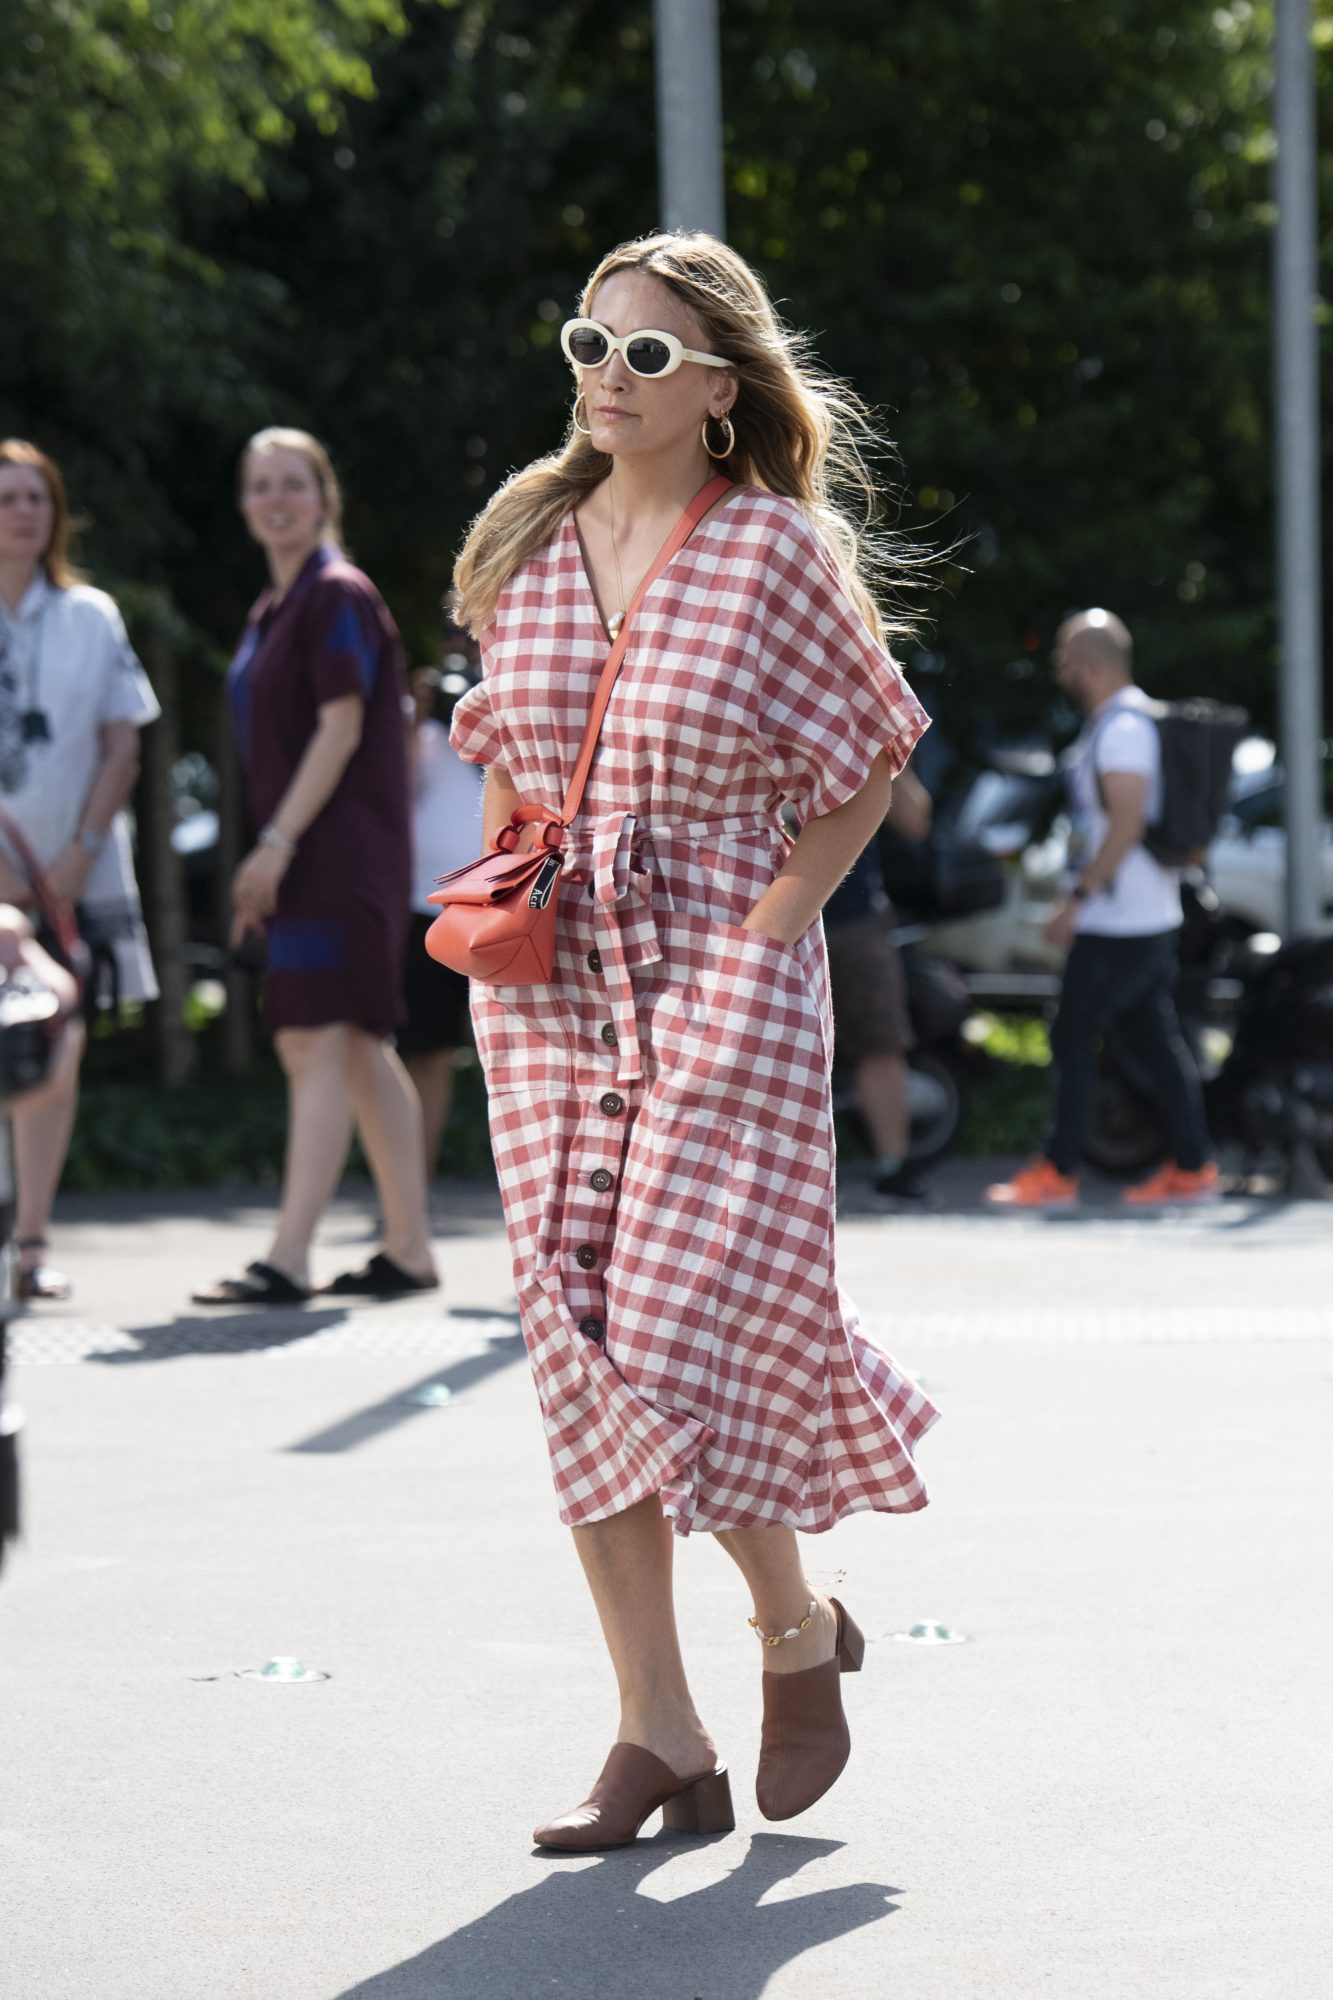 Summer Outfits, Red Gingham Dress, Slides, Backyard Barbecue Outfit Idea